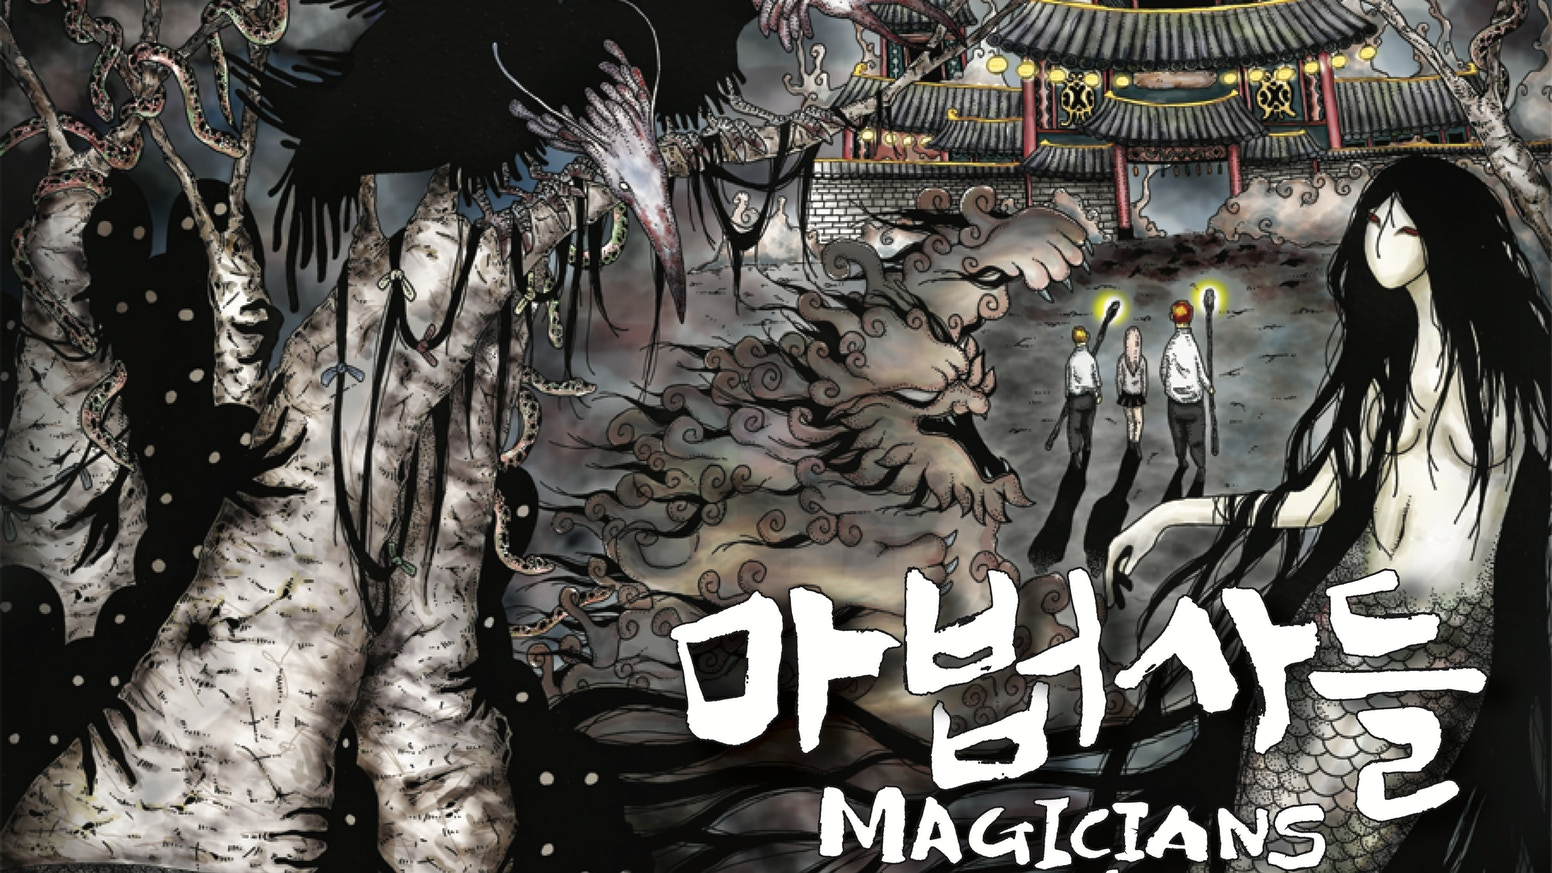 Magicians: A Language Learning Rpg A Modern Fantasy Rpg Set In Seoul  Designed To Both Tell A Great Story And Motivate